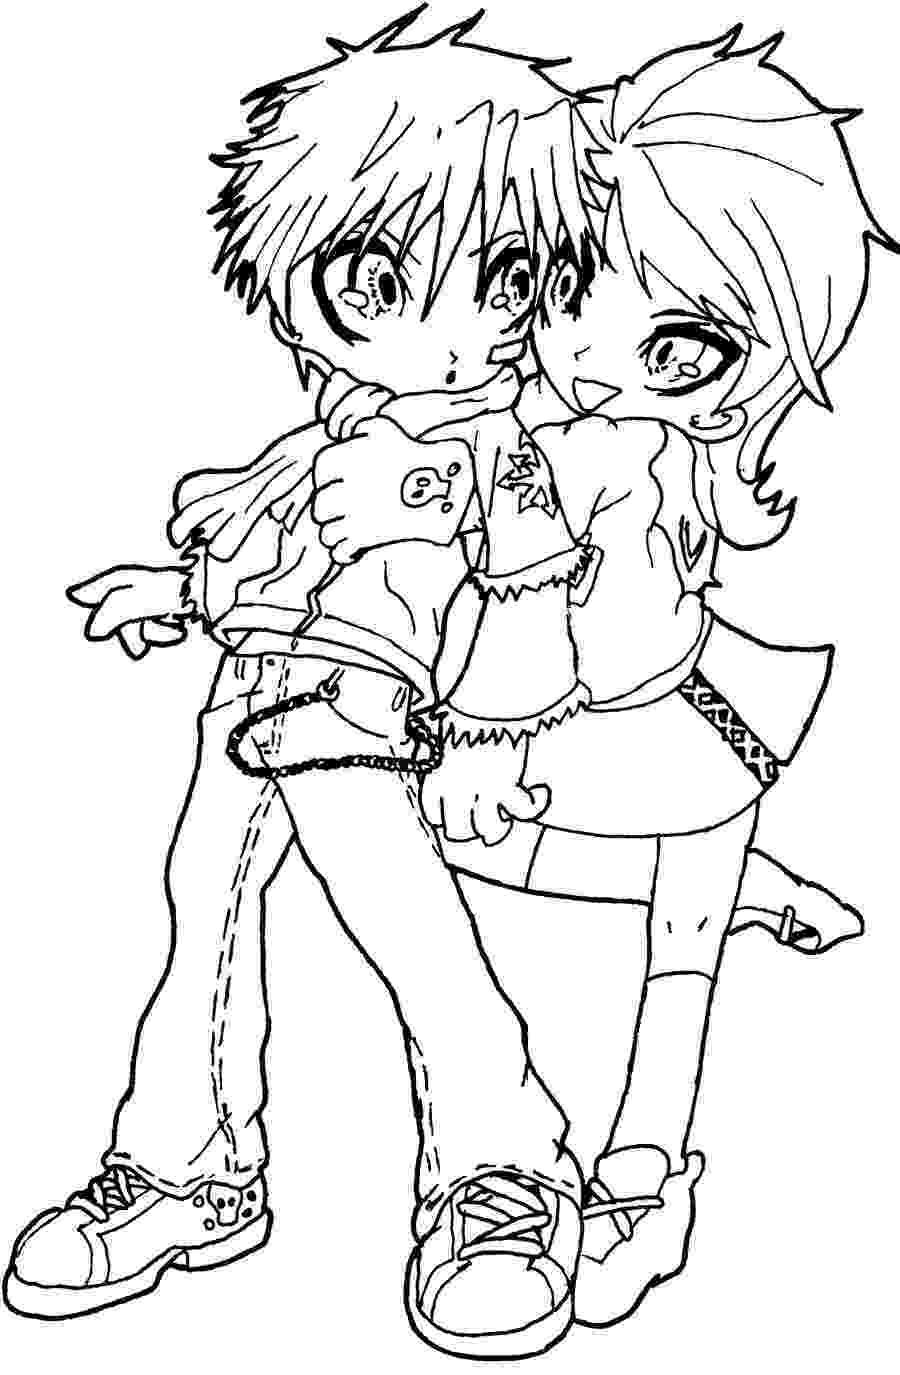 anime couple coloring pages anime couples hugging coloring pages 18806jpg 1153701 pages coloring anime couple